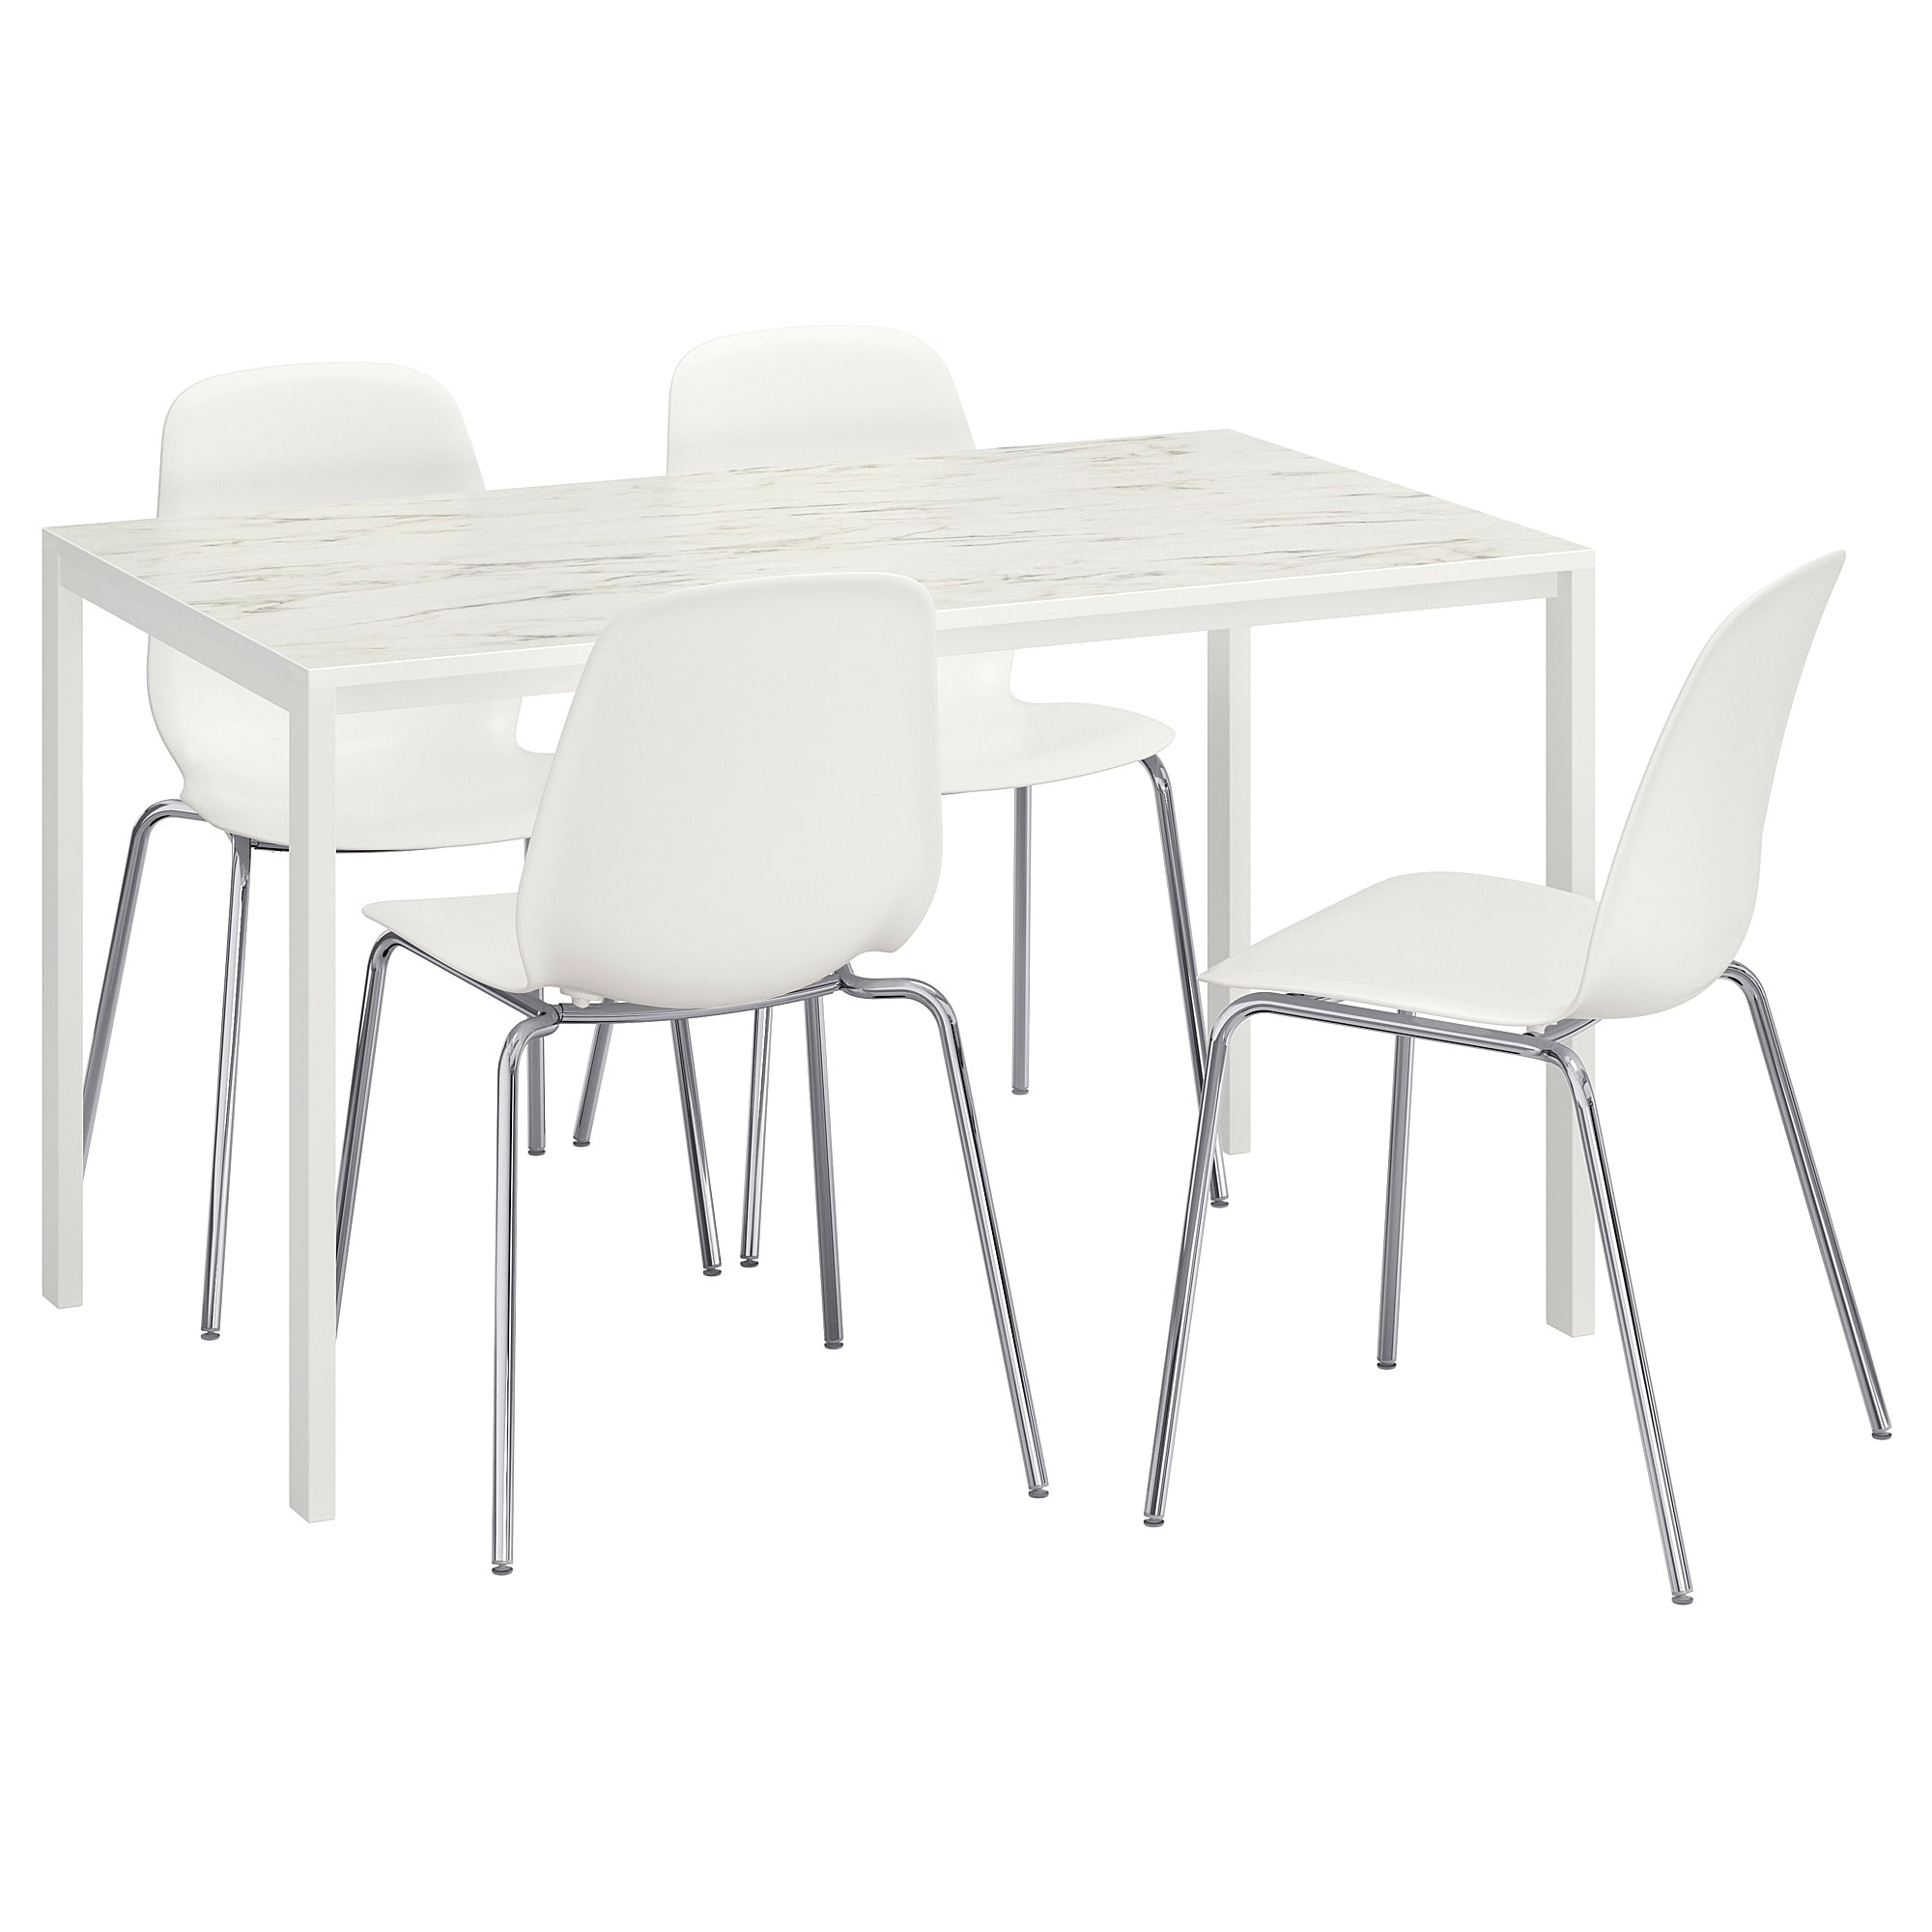 Melltorp/leifarne Table And 4 Chairs White Marble Effect/chrome Inside Most Popular Marble Effect Dining Tables And Chairs (Gallery 16 of 25)